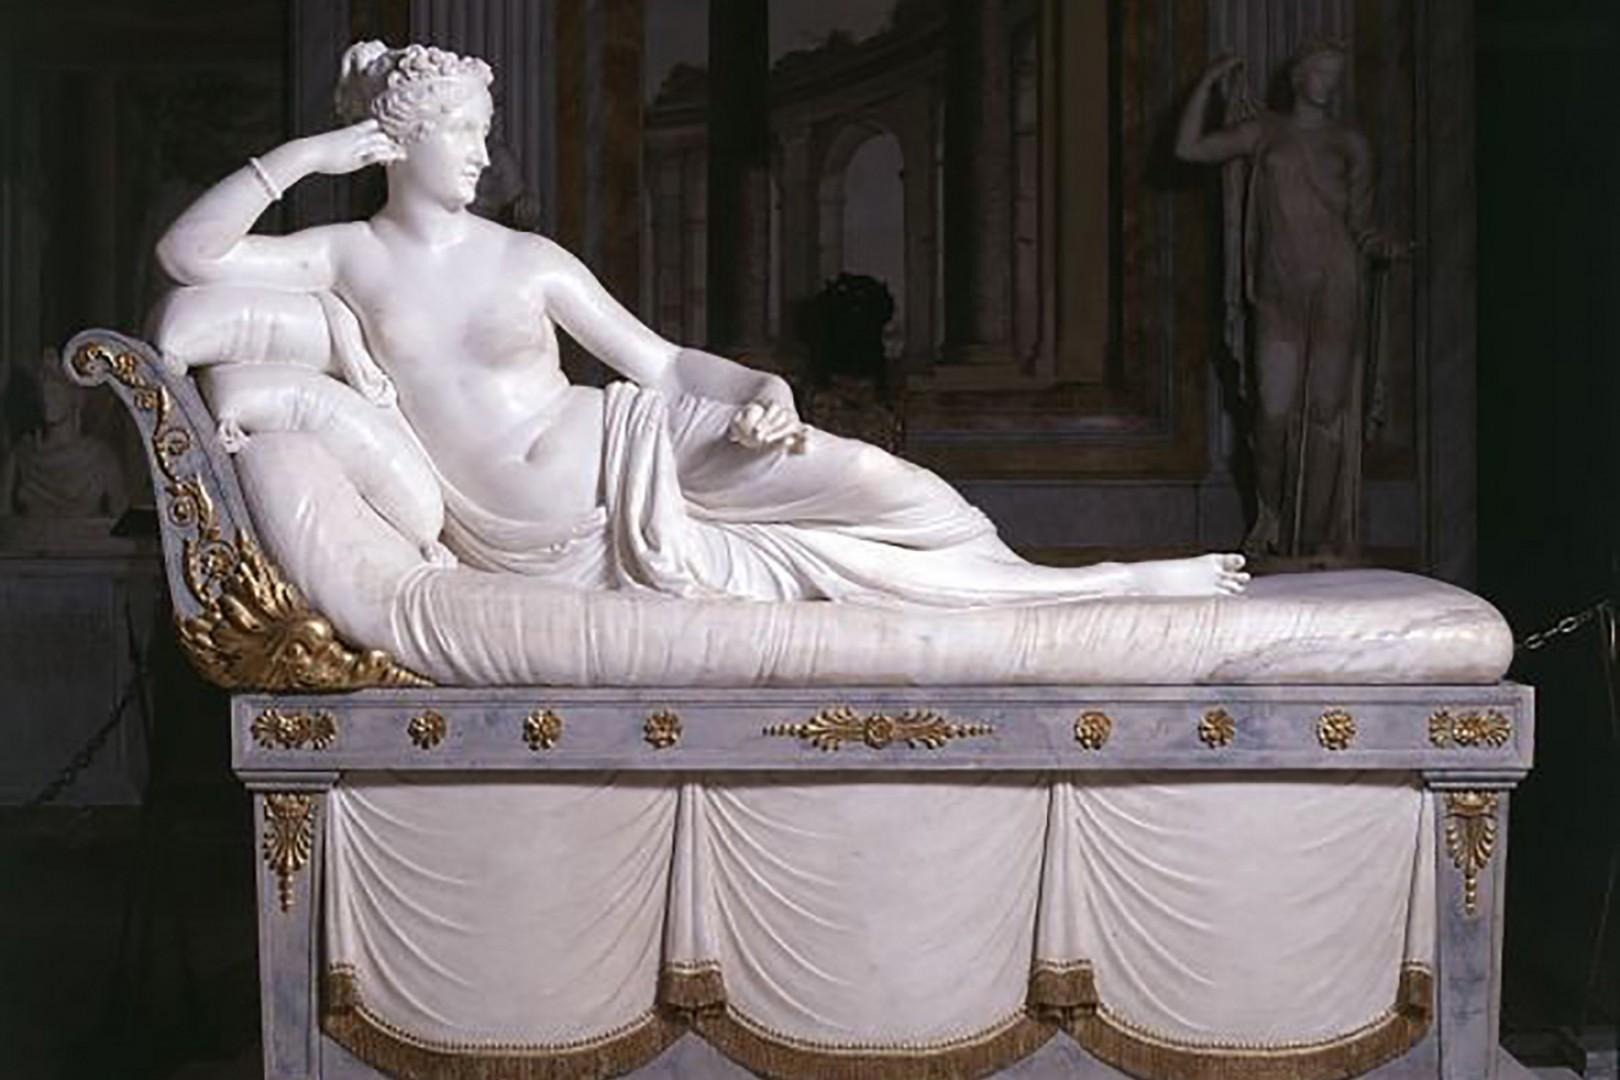 The namesake of this apartment, Paolina Borghese enternalised here by artist Antonio Canova in 1808.